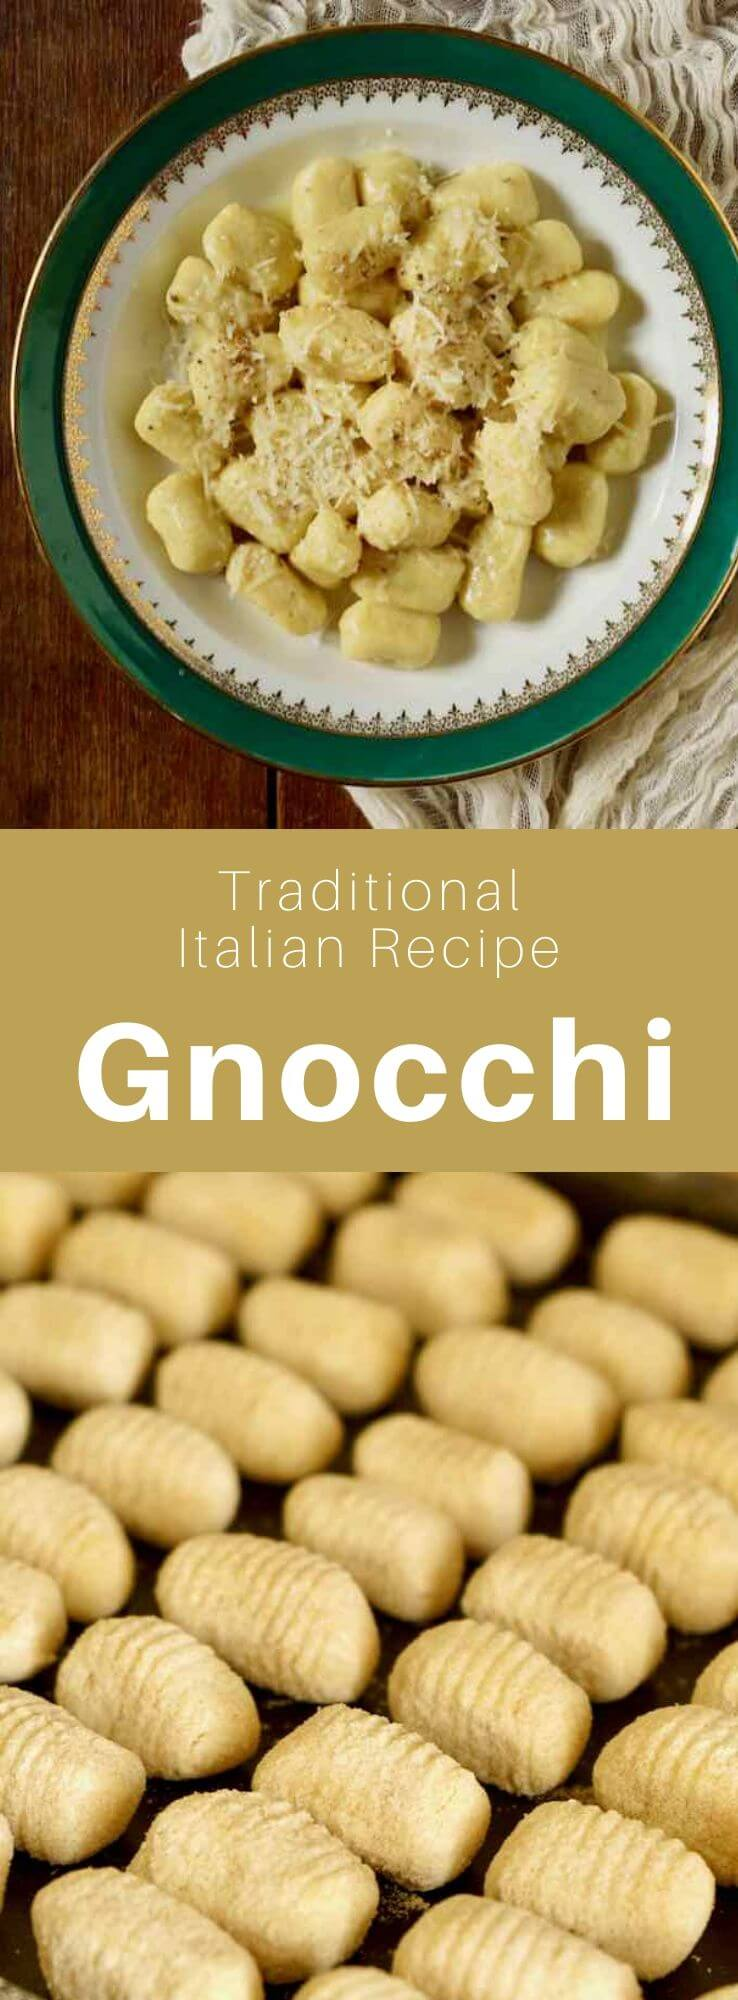 Gnocchi is a family of Italian pasta recipes that share the same name. The most common gnocchi are prepared with potatoes. #ItalianRecipe #ItalianFood #ItalianCuisine #WorldCuisine #196 flavors